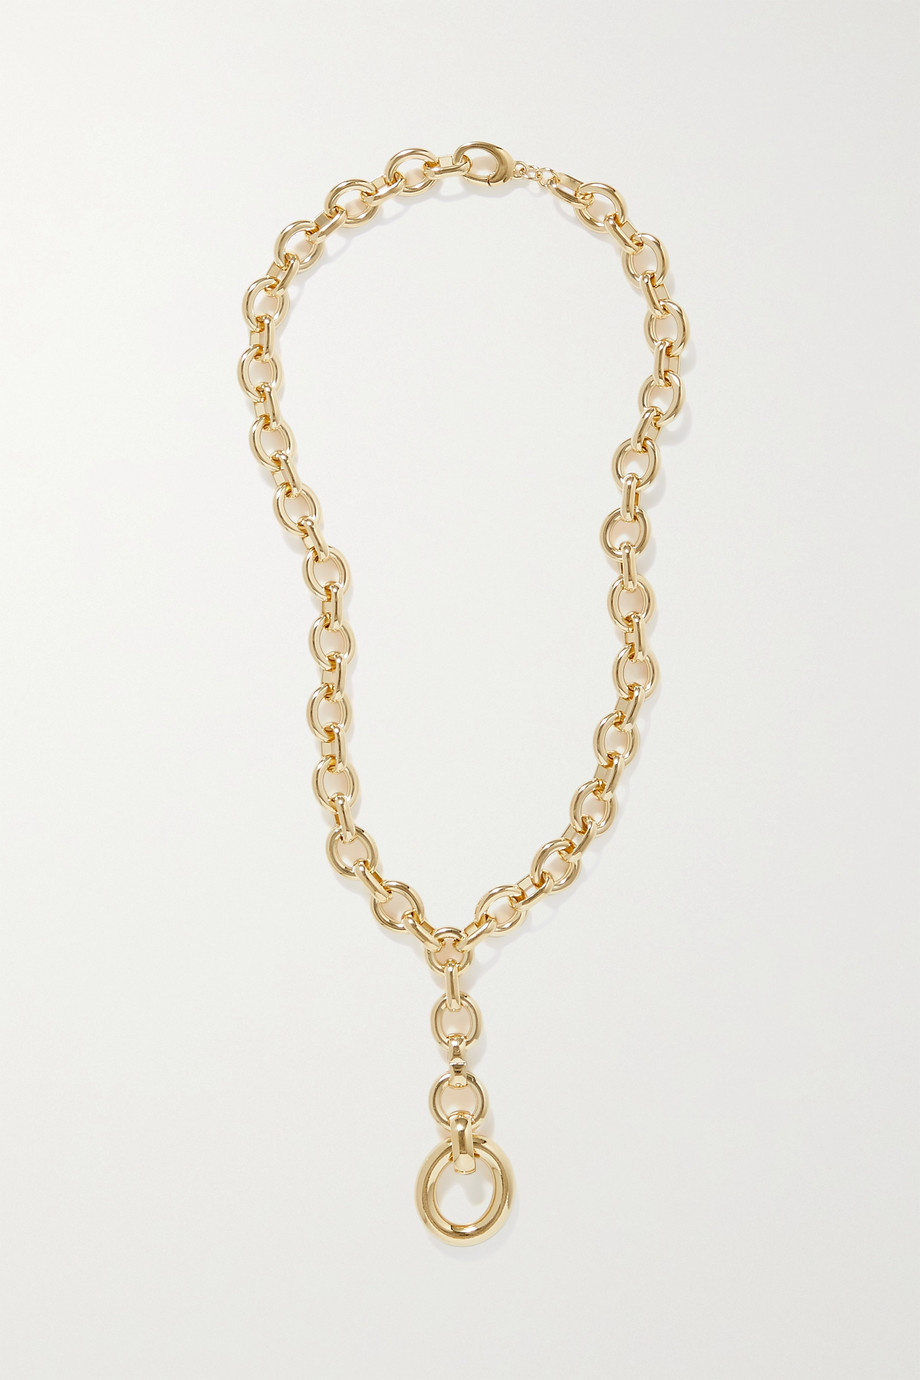 Laura Lombardi Scala gold-plated necklace